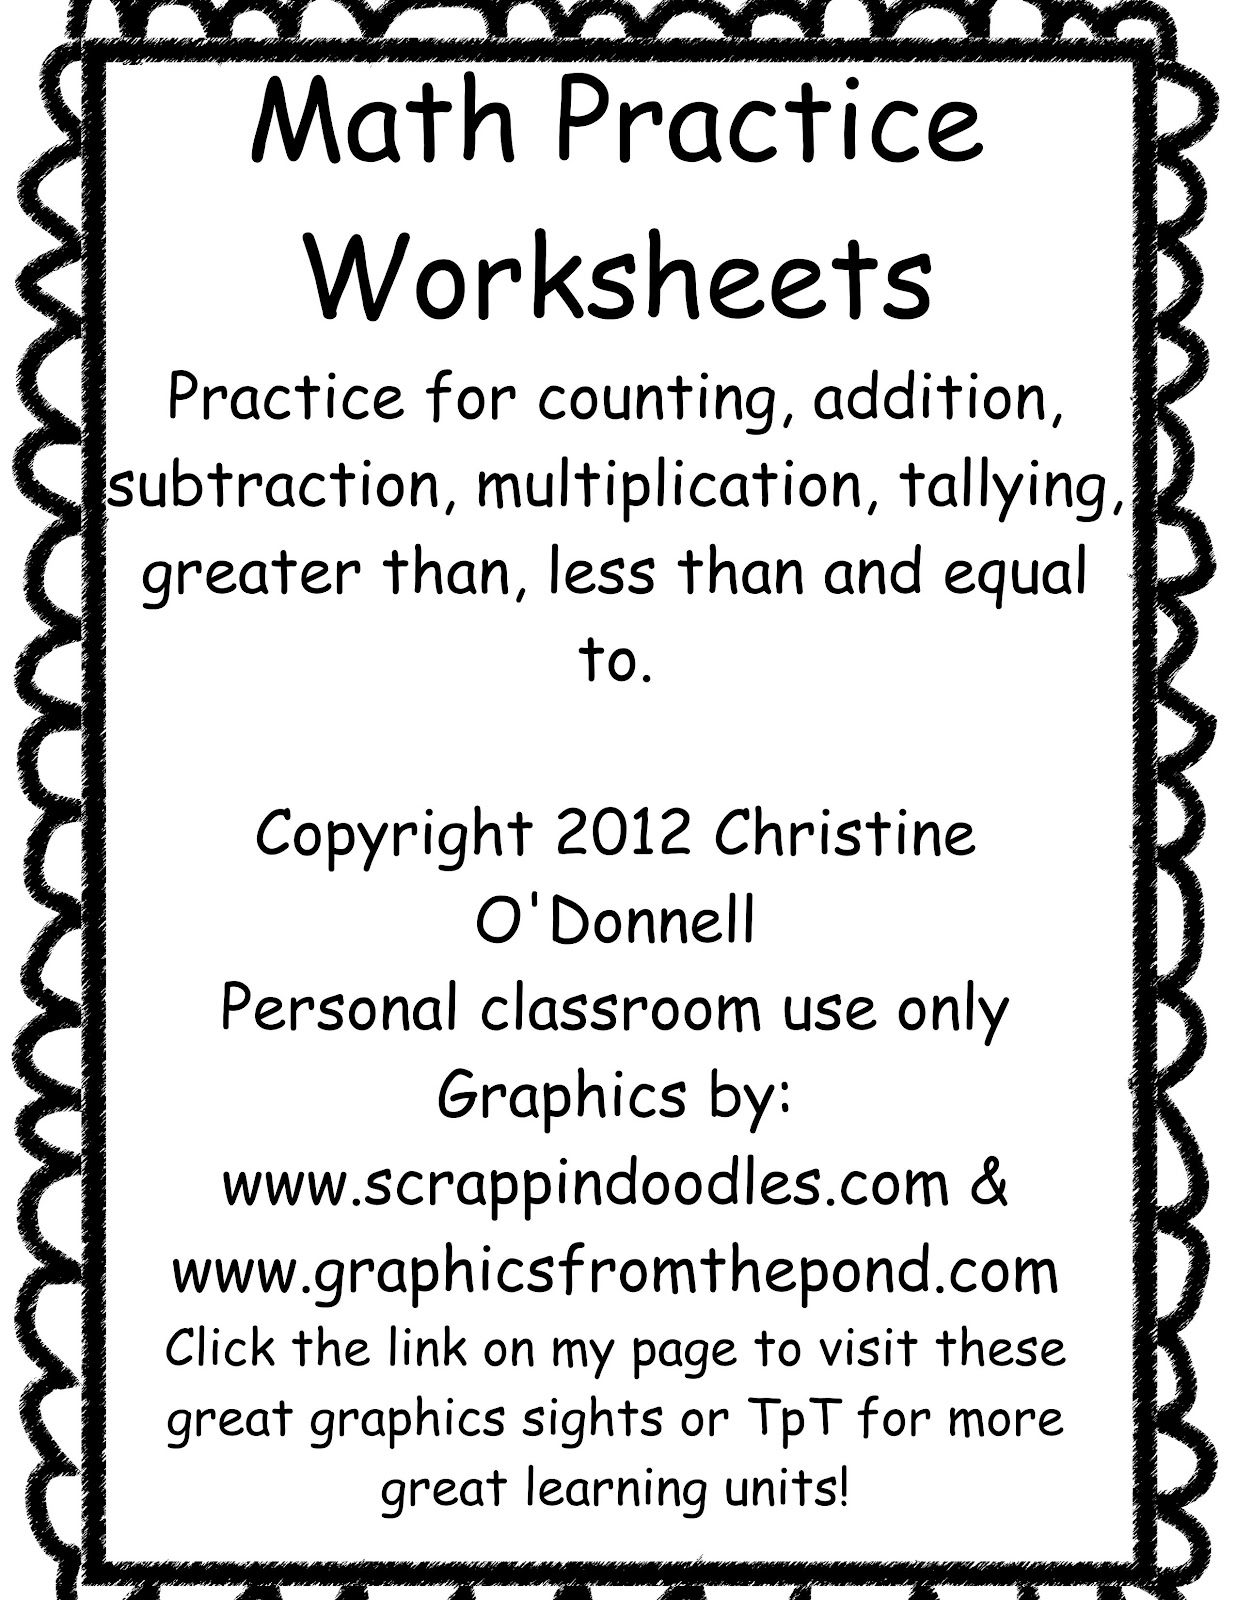 math worksheet : the crazy pre k classroom math practice freebies! : Addition Worksheet Creator